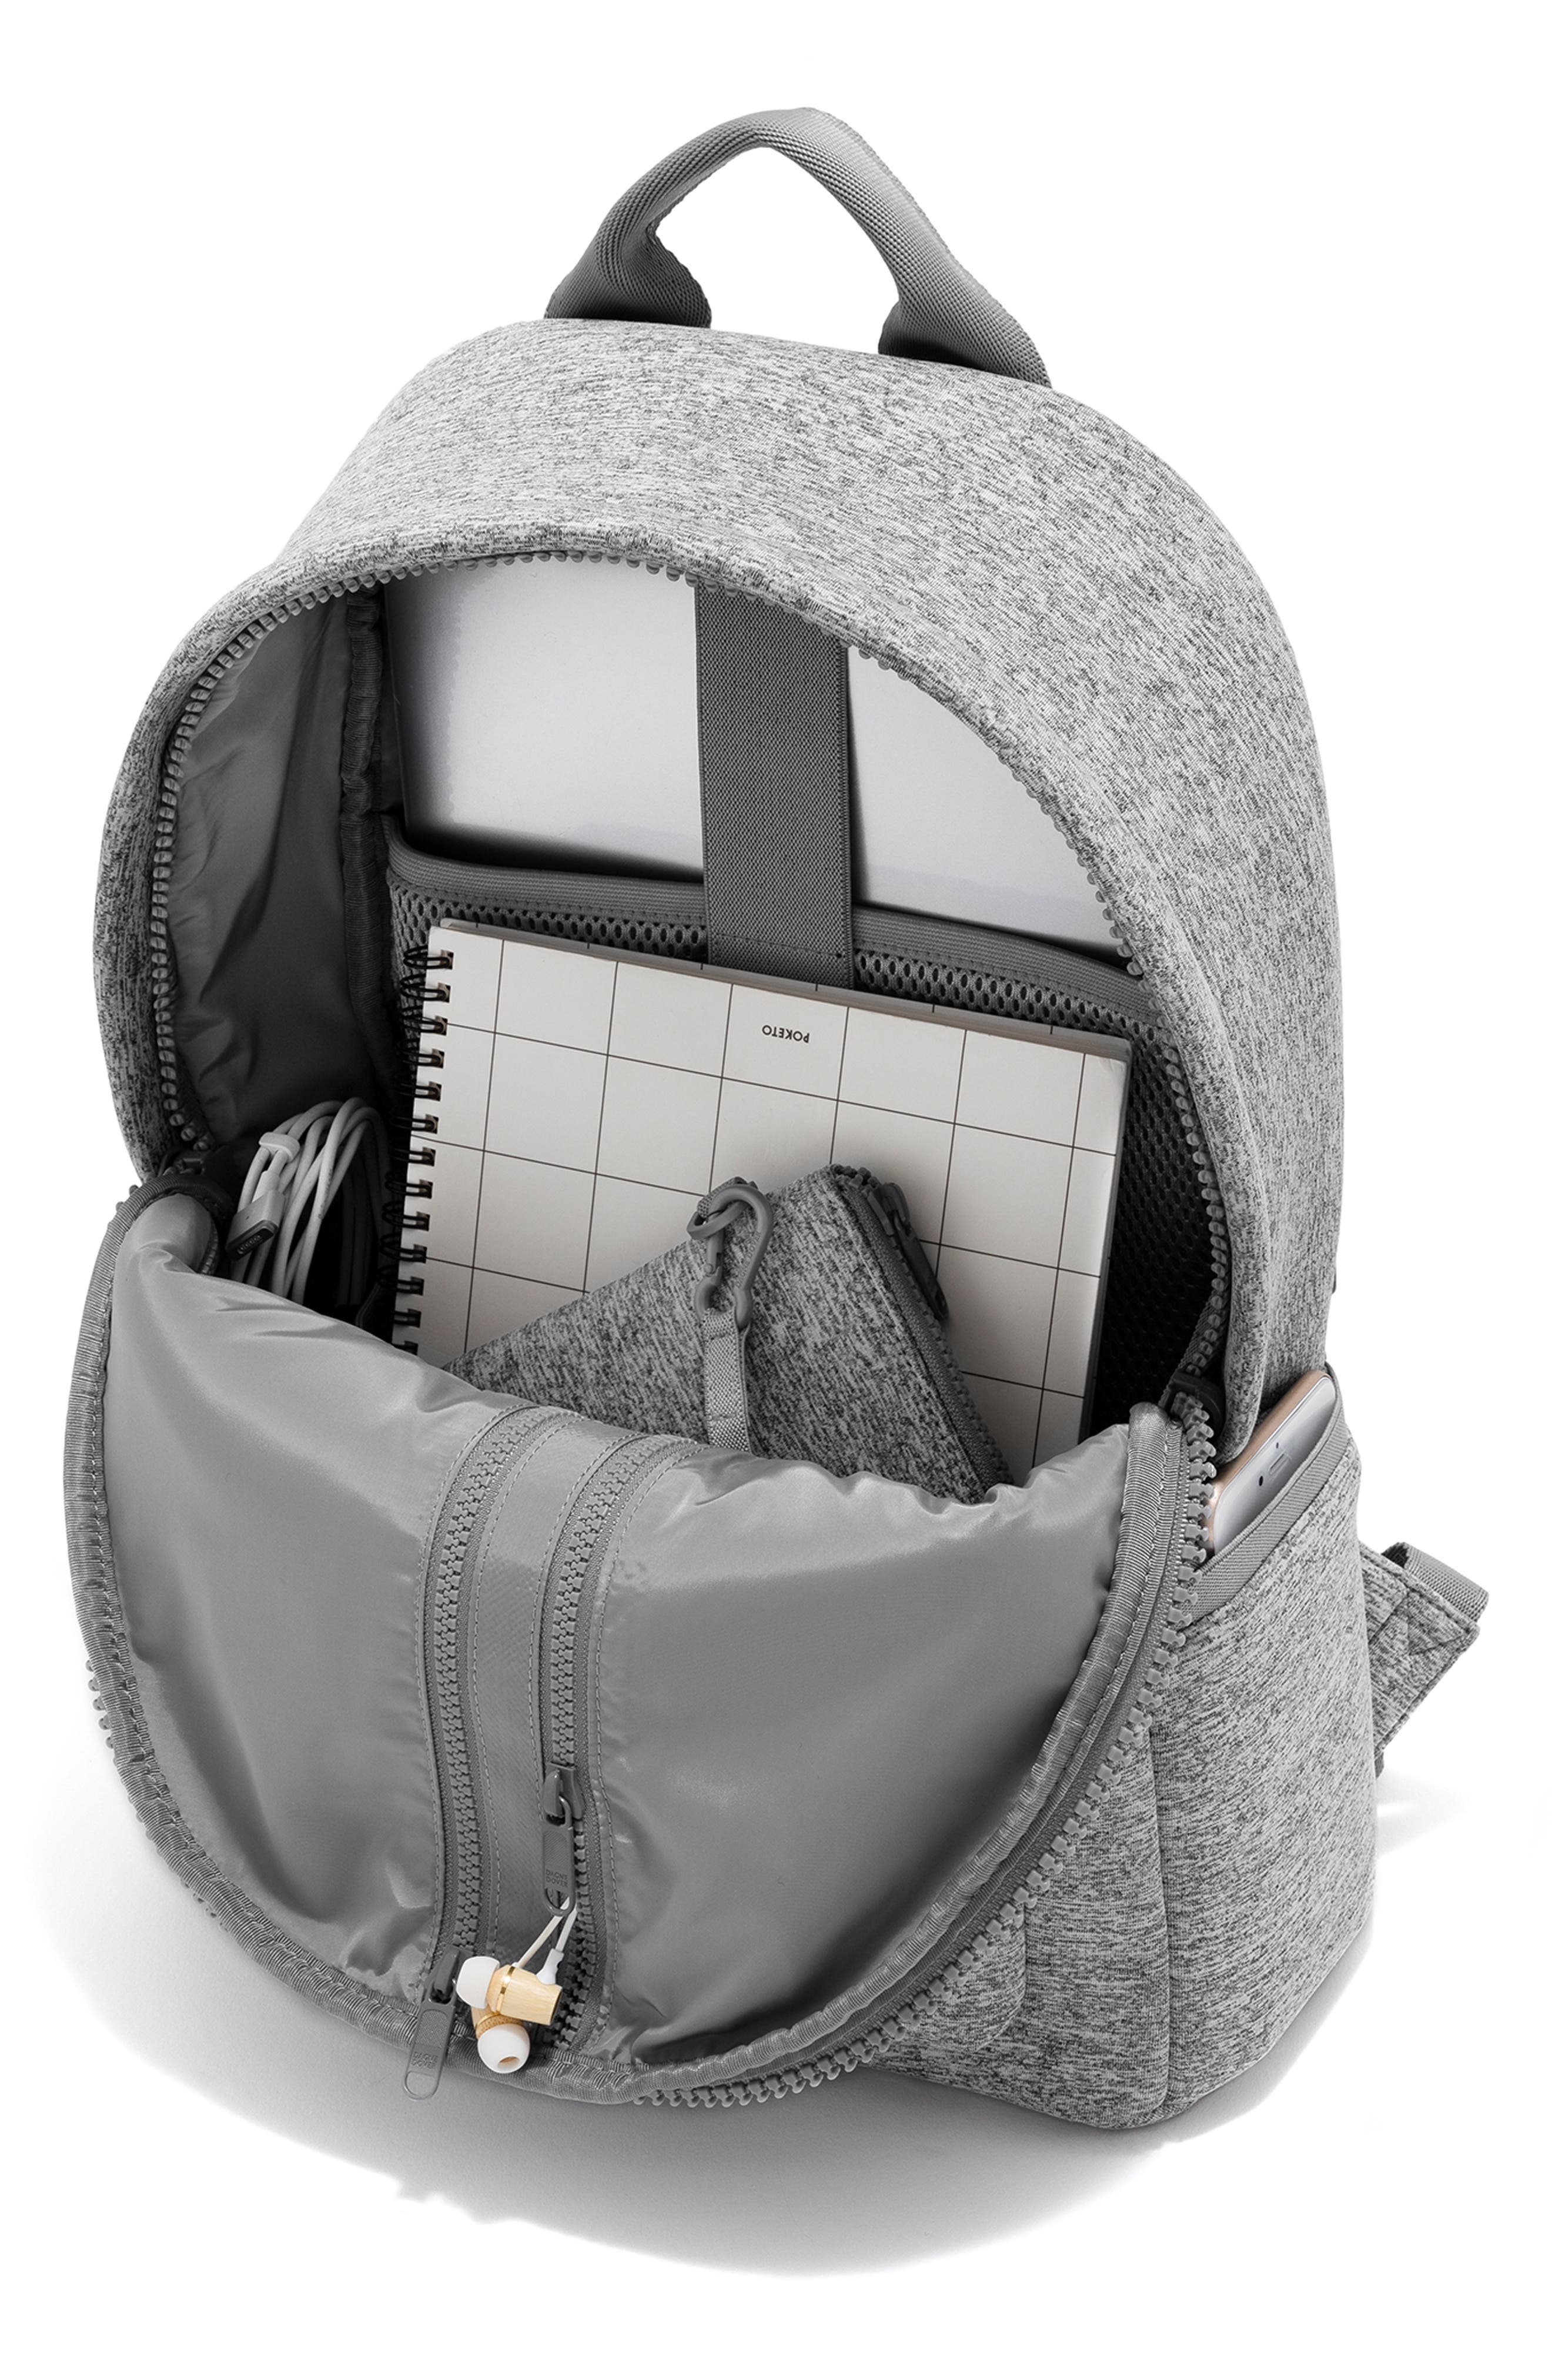 365 Dakota Neoprene Backpack,                             Alternate thumbnail 3, color,                             HEATHER GREY